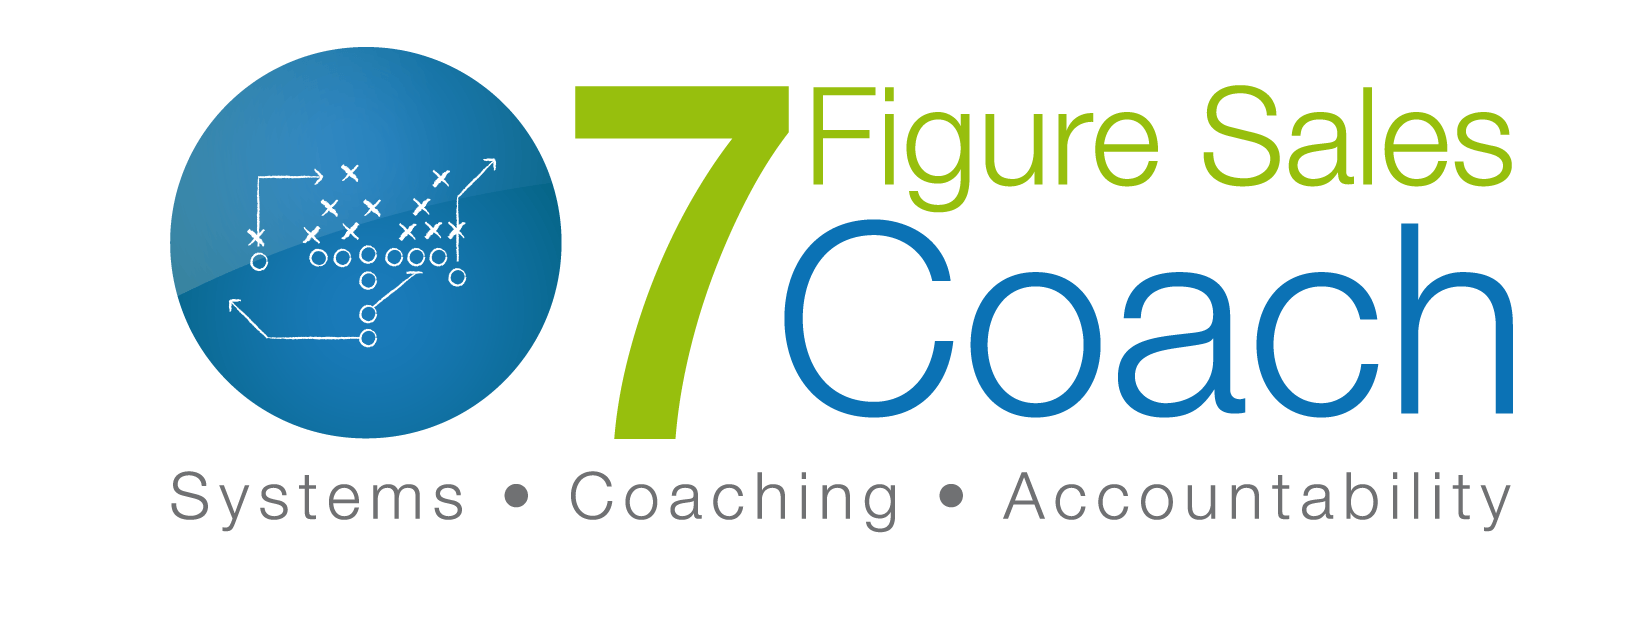 7 Figures Sales Coach Program